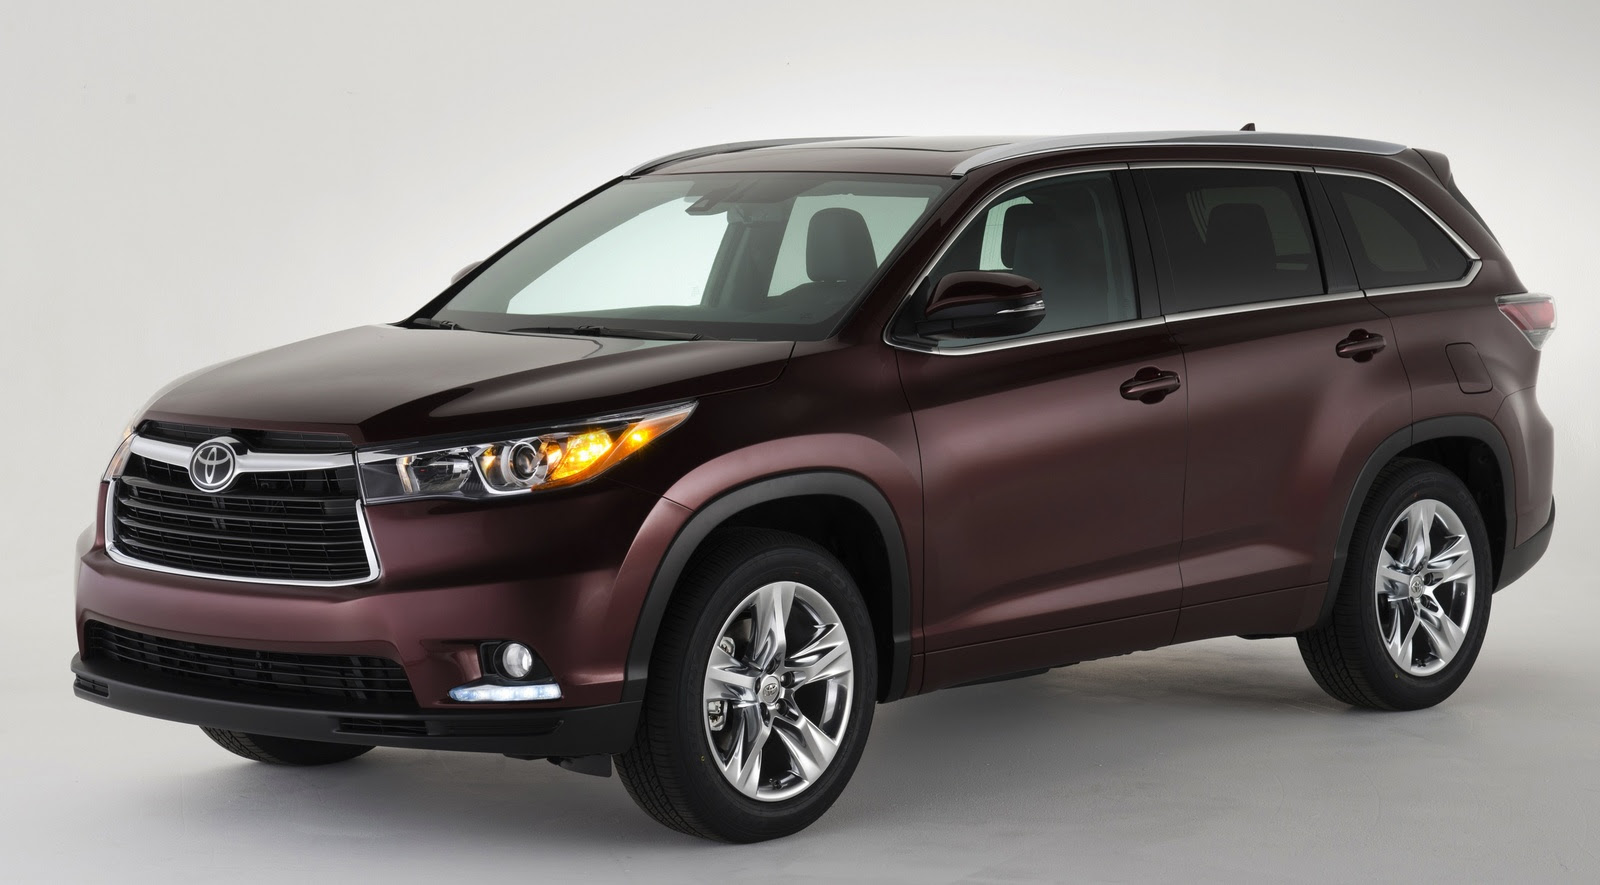 Home / Research / Toyota / Highlander / 2015